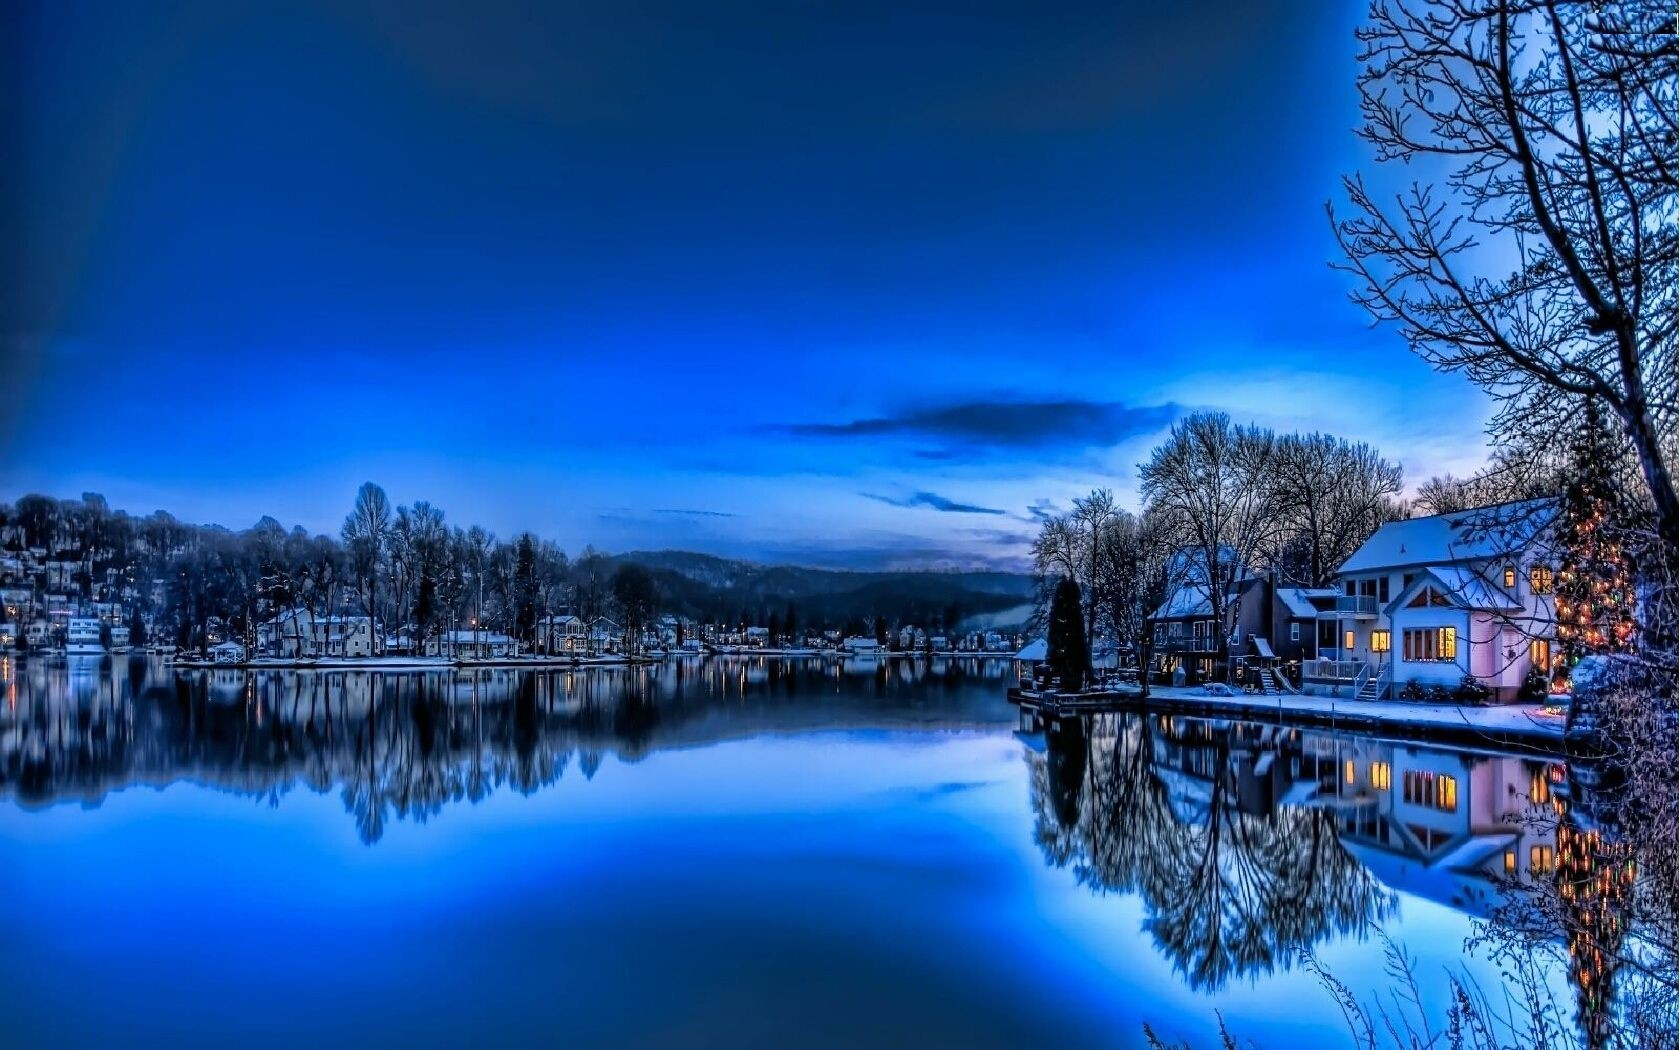 Haus am see wallpaper  House on Winter Lake Wallpaper and Hintergrund | 1680x1050 | ID:700166